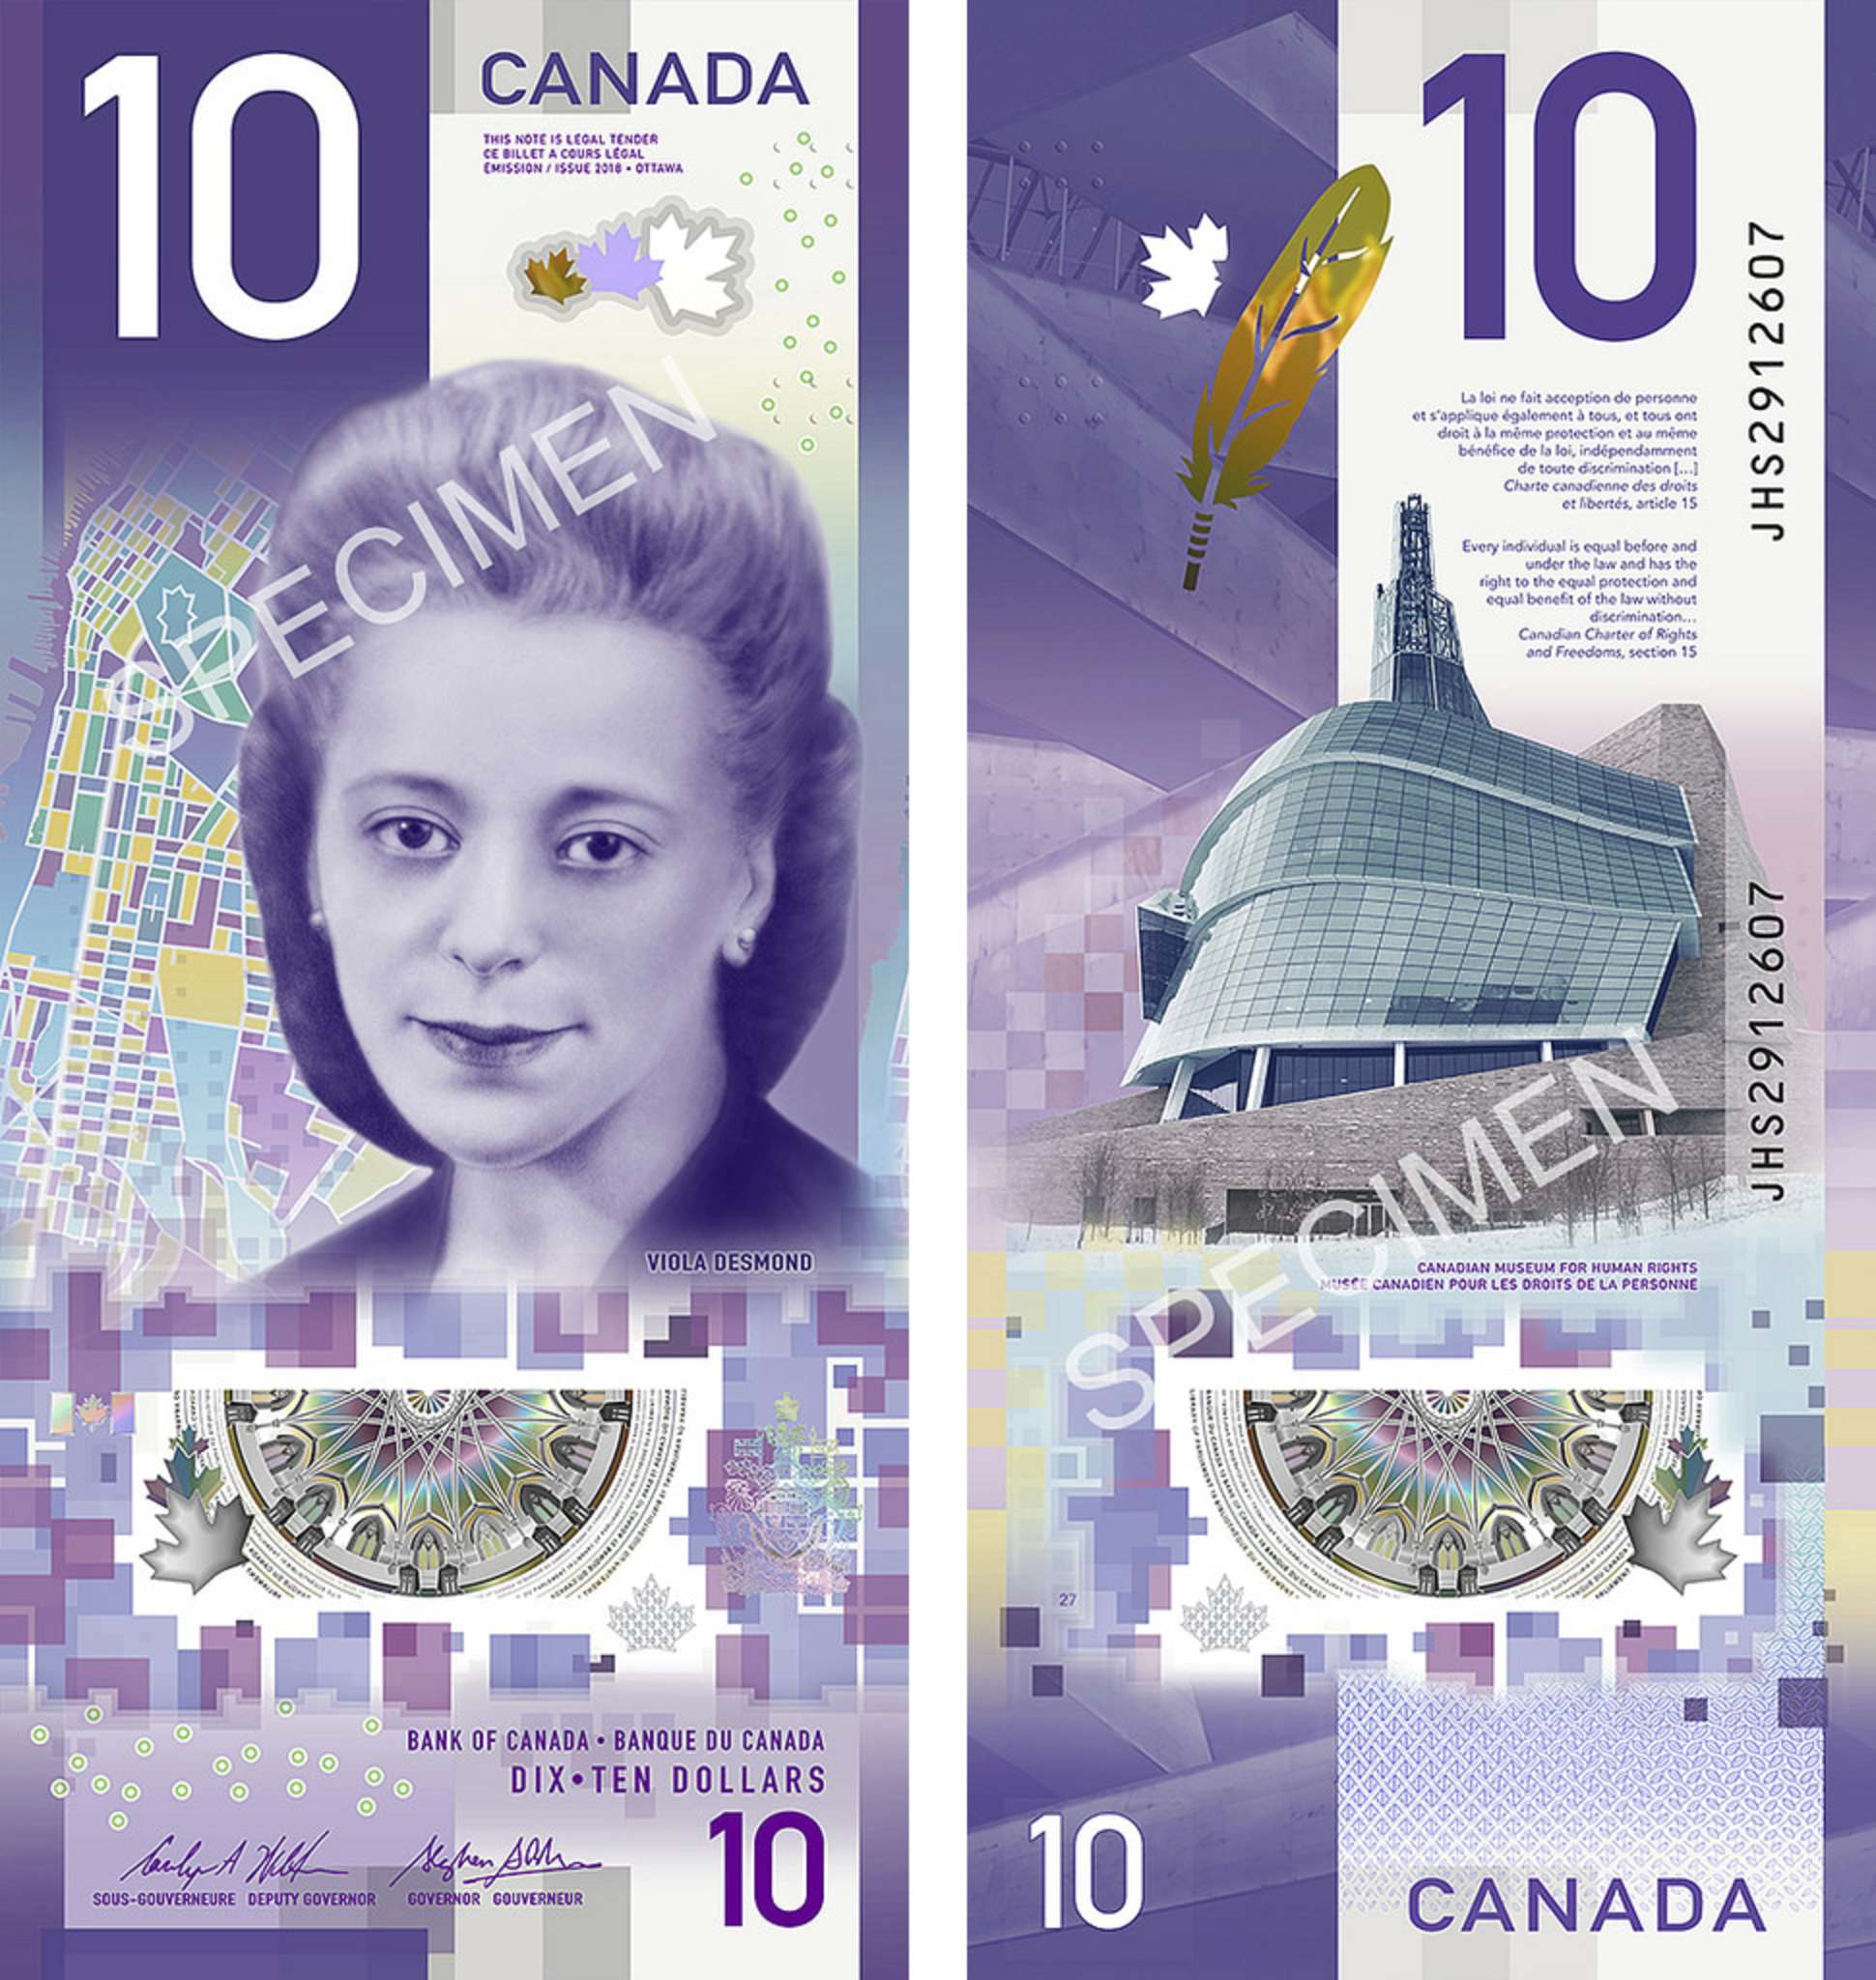 Canada unveils new $10 bill featuring female civil-rights pioneer Viola Desmond